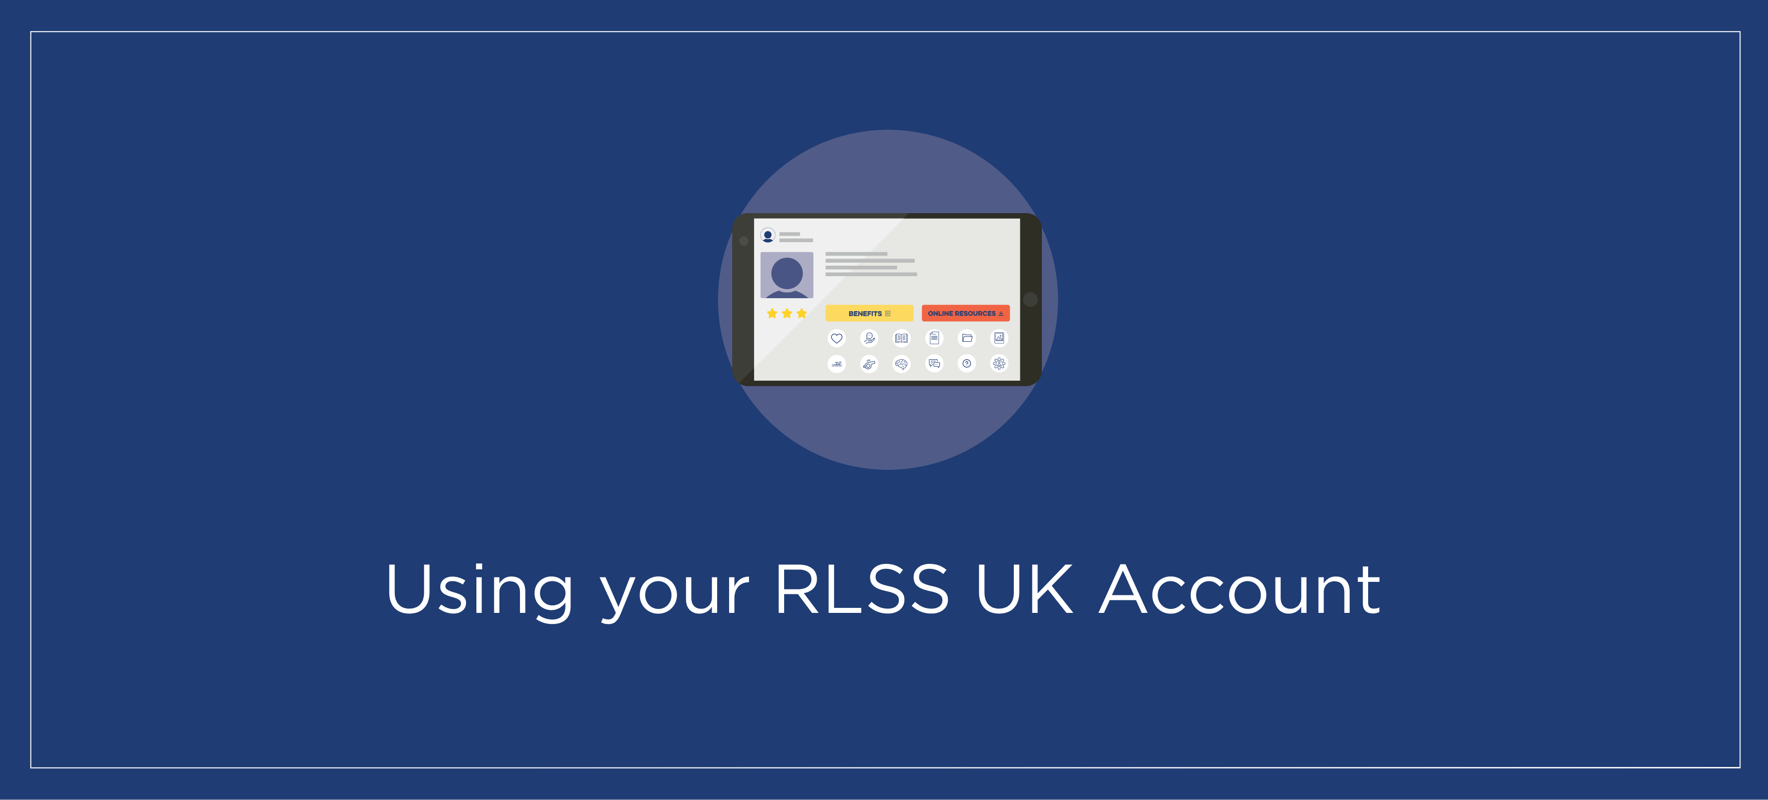 Using your RLSS UK Account (powered by tahdah)